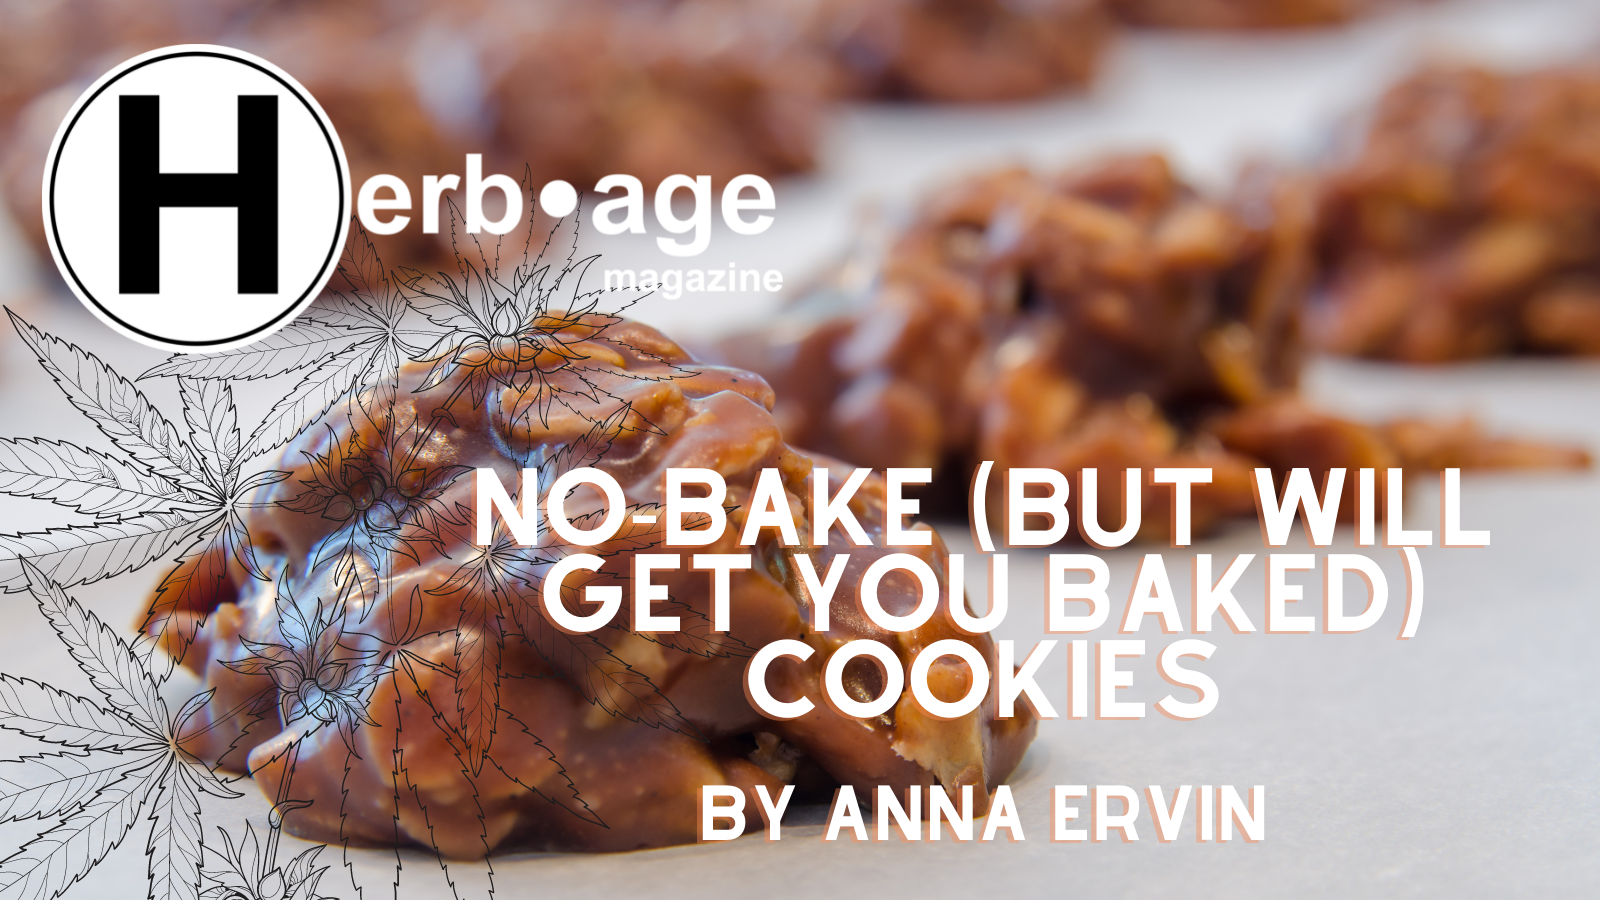 No-Bake (but will get you baked) Cookies